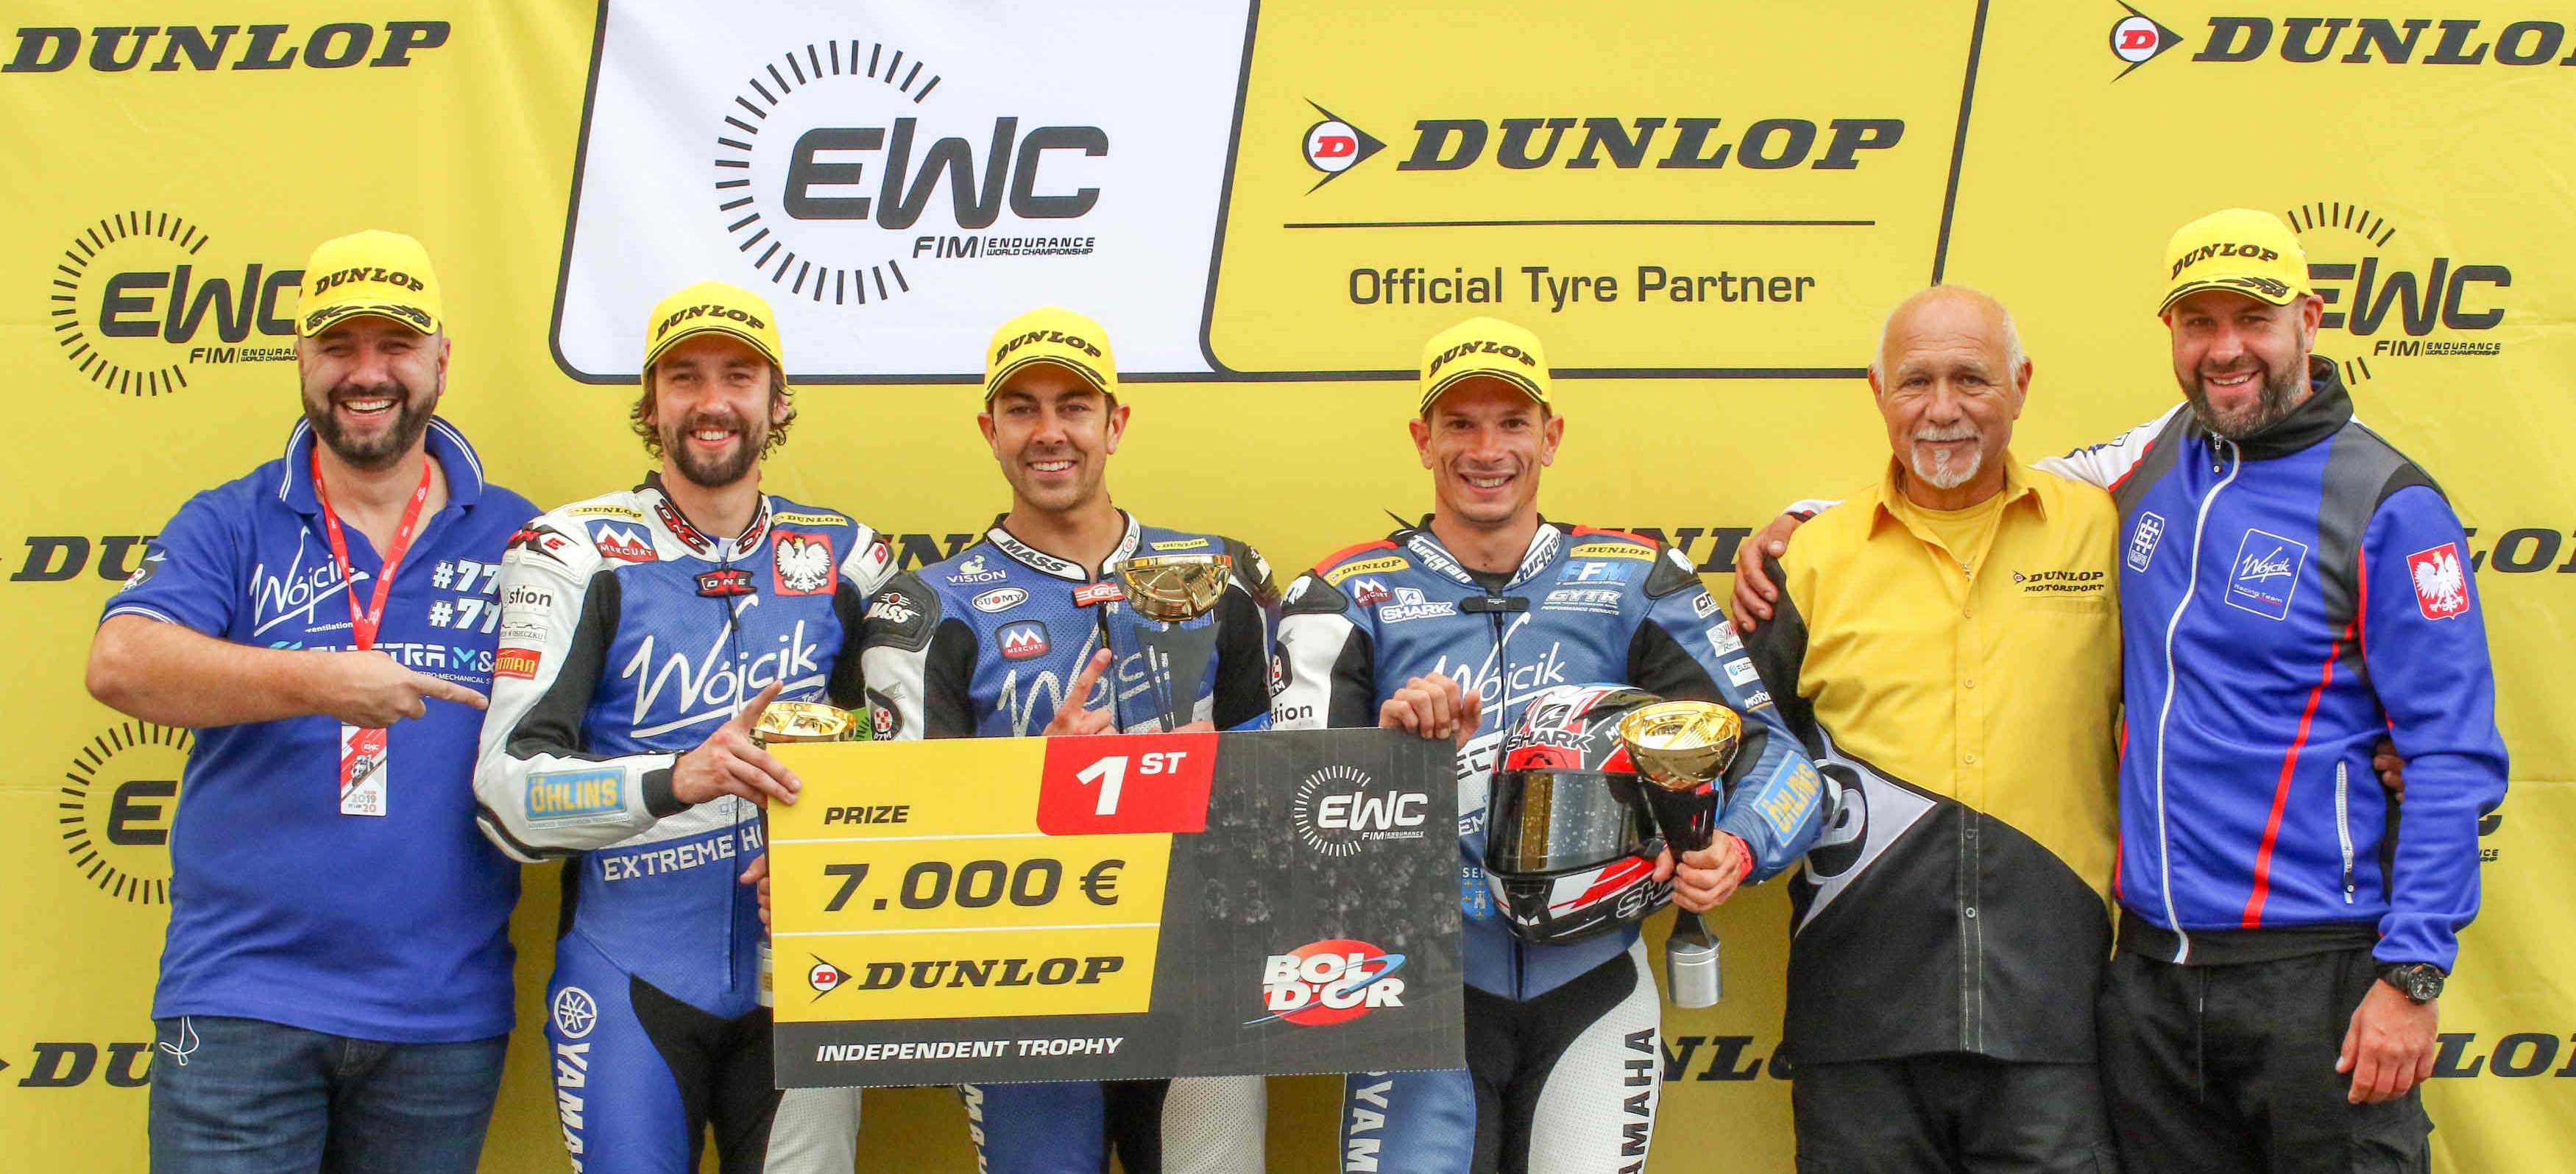 Wójcik Racing Team, vainqueur du EWC Dunlop Independent Trophy au Bol d'Or